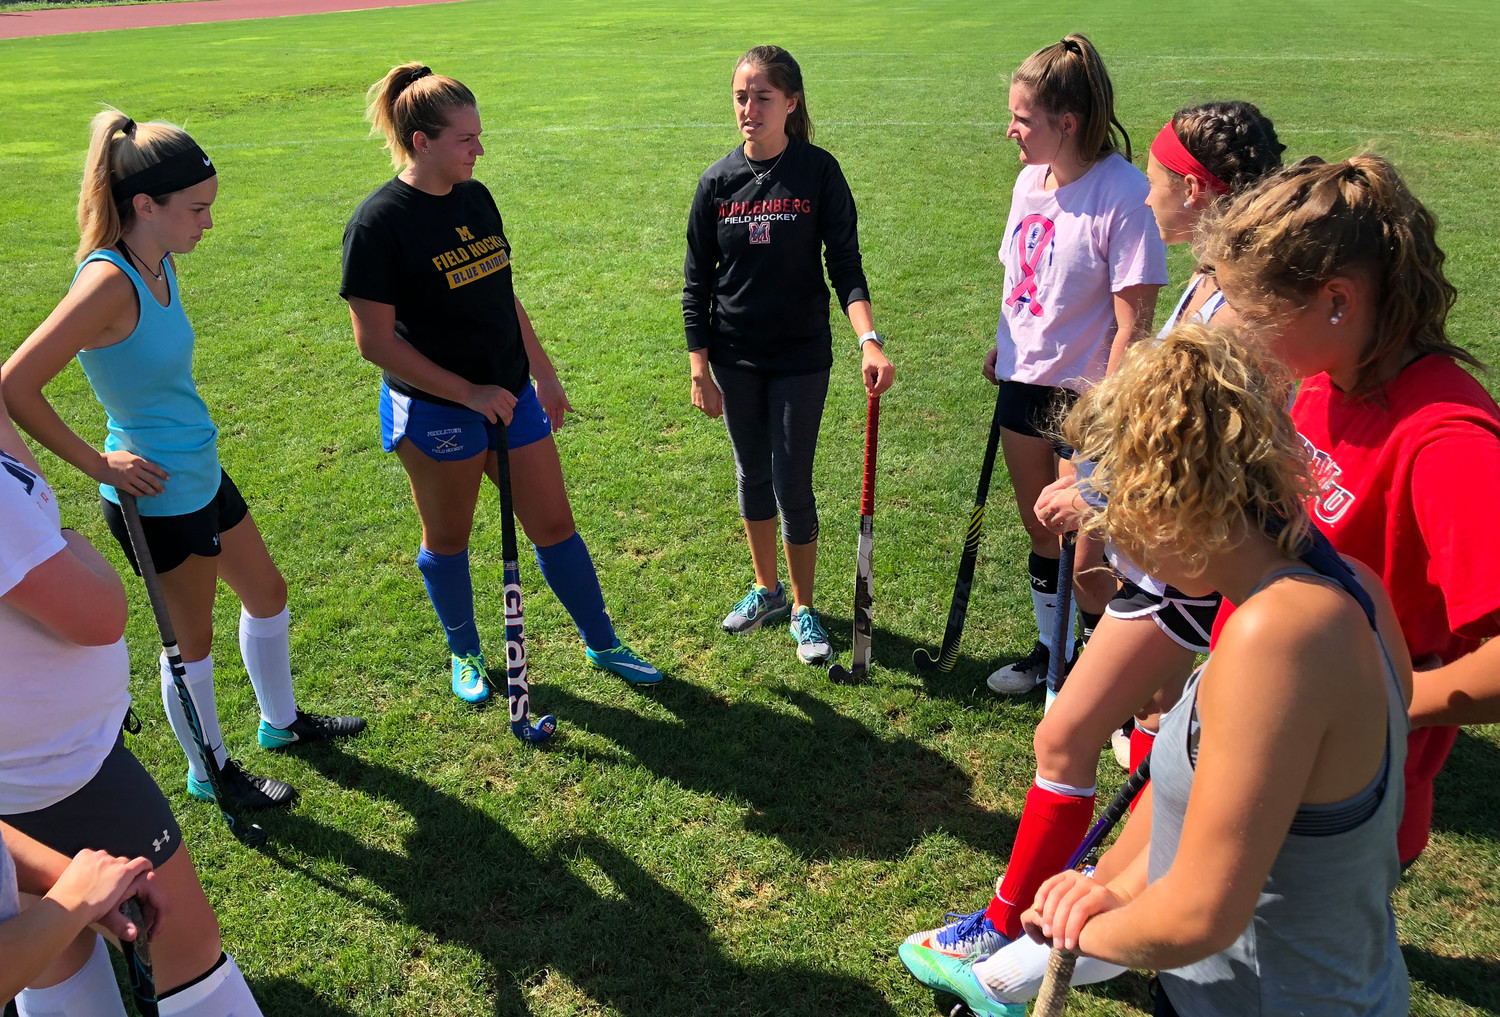 Players listen to coach Sierra Lenker.